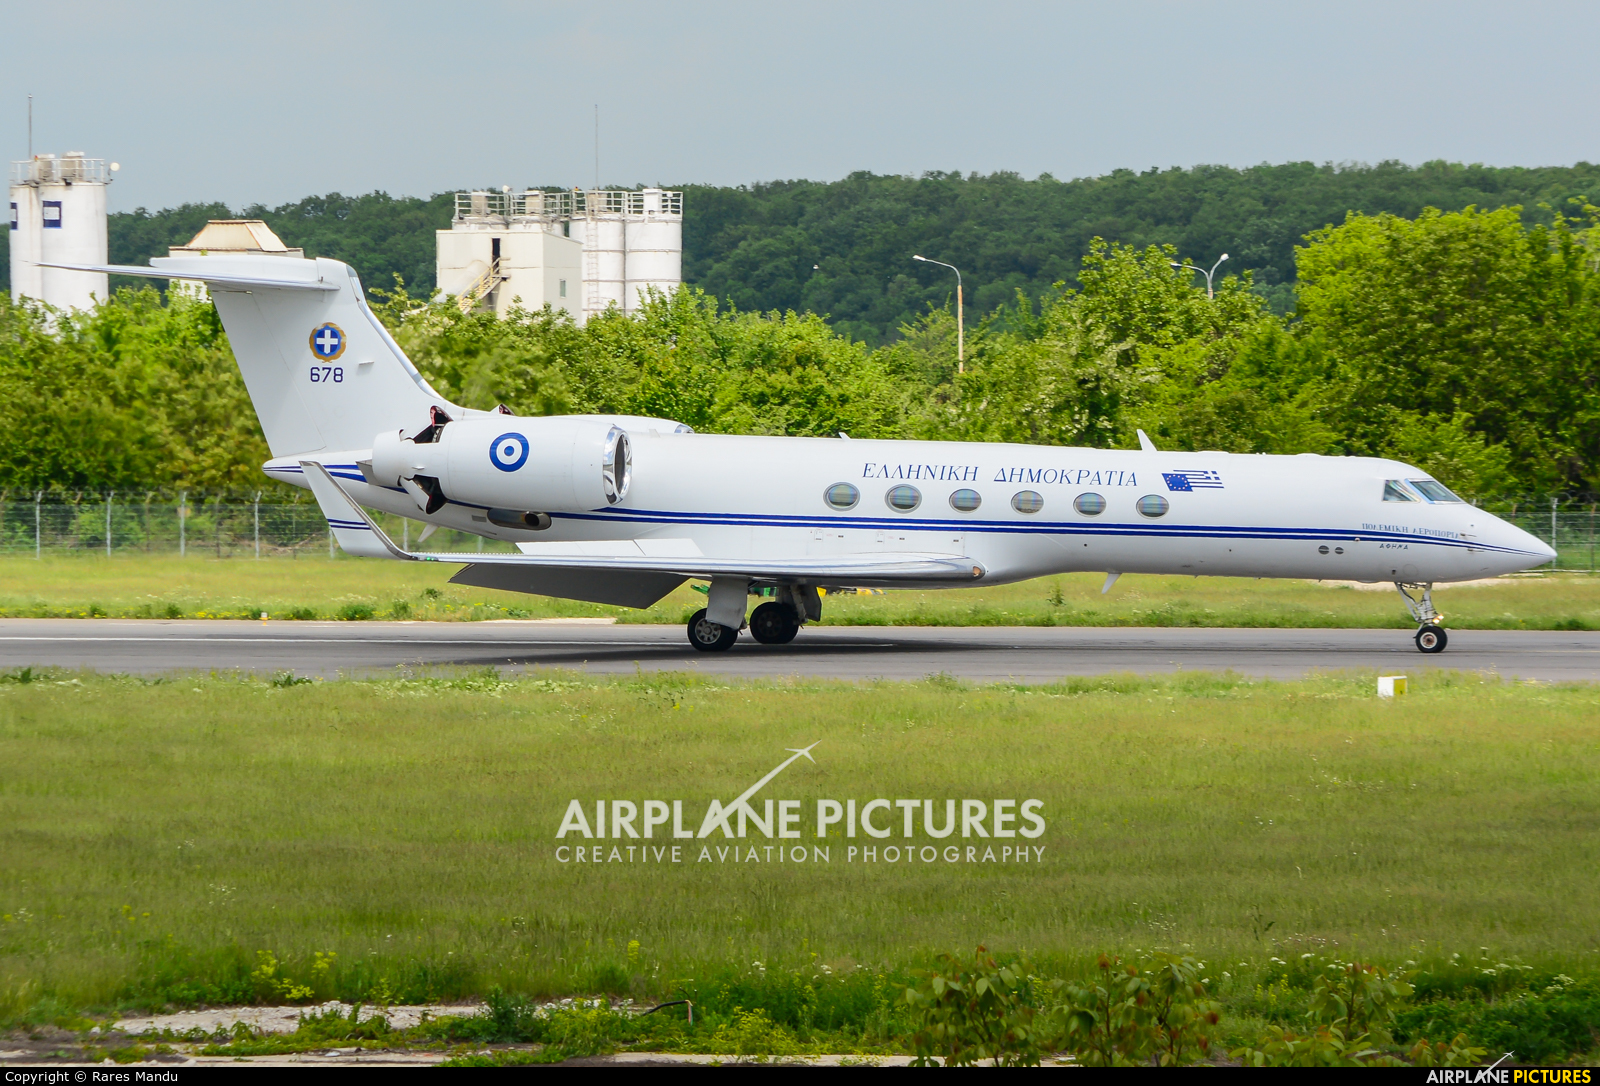 Greece - Hellenic Air Force 678 aircraft at Bucharest - Aurel Vlaicu Intl